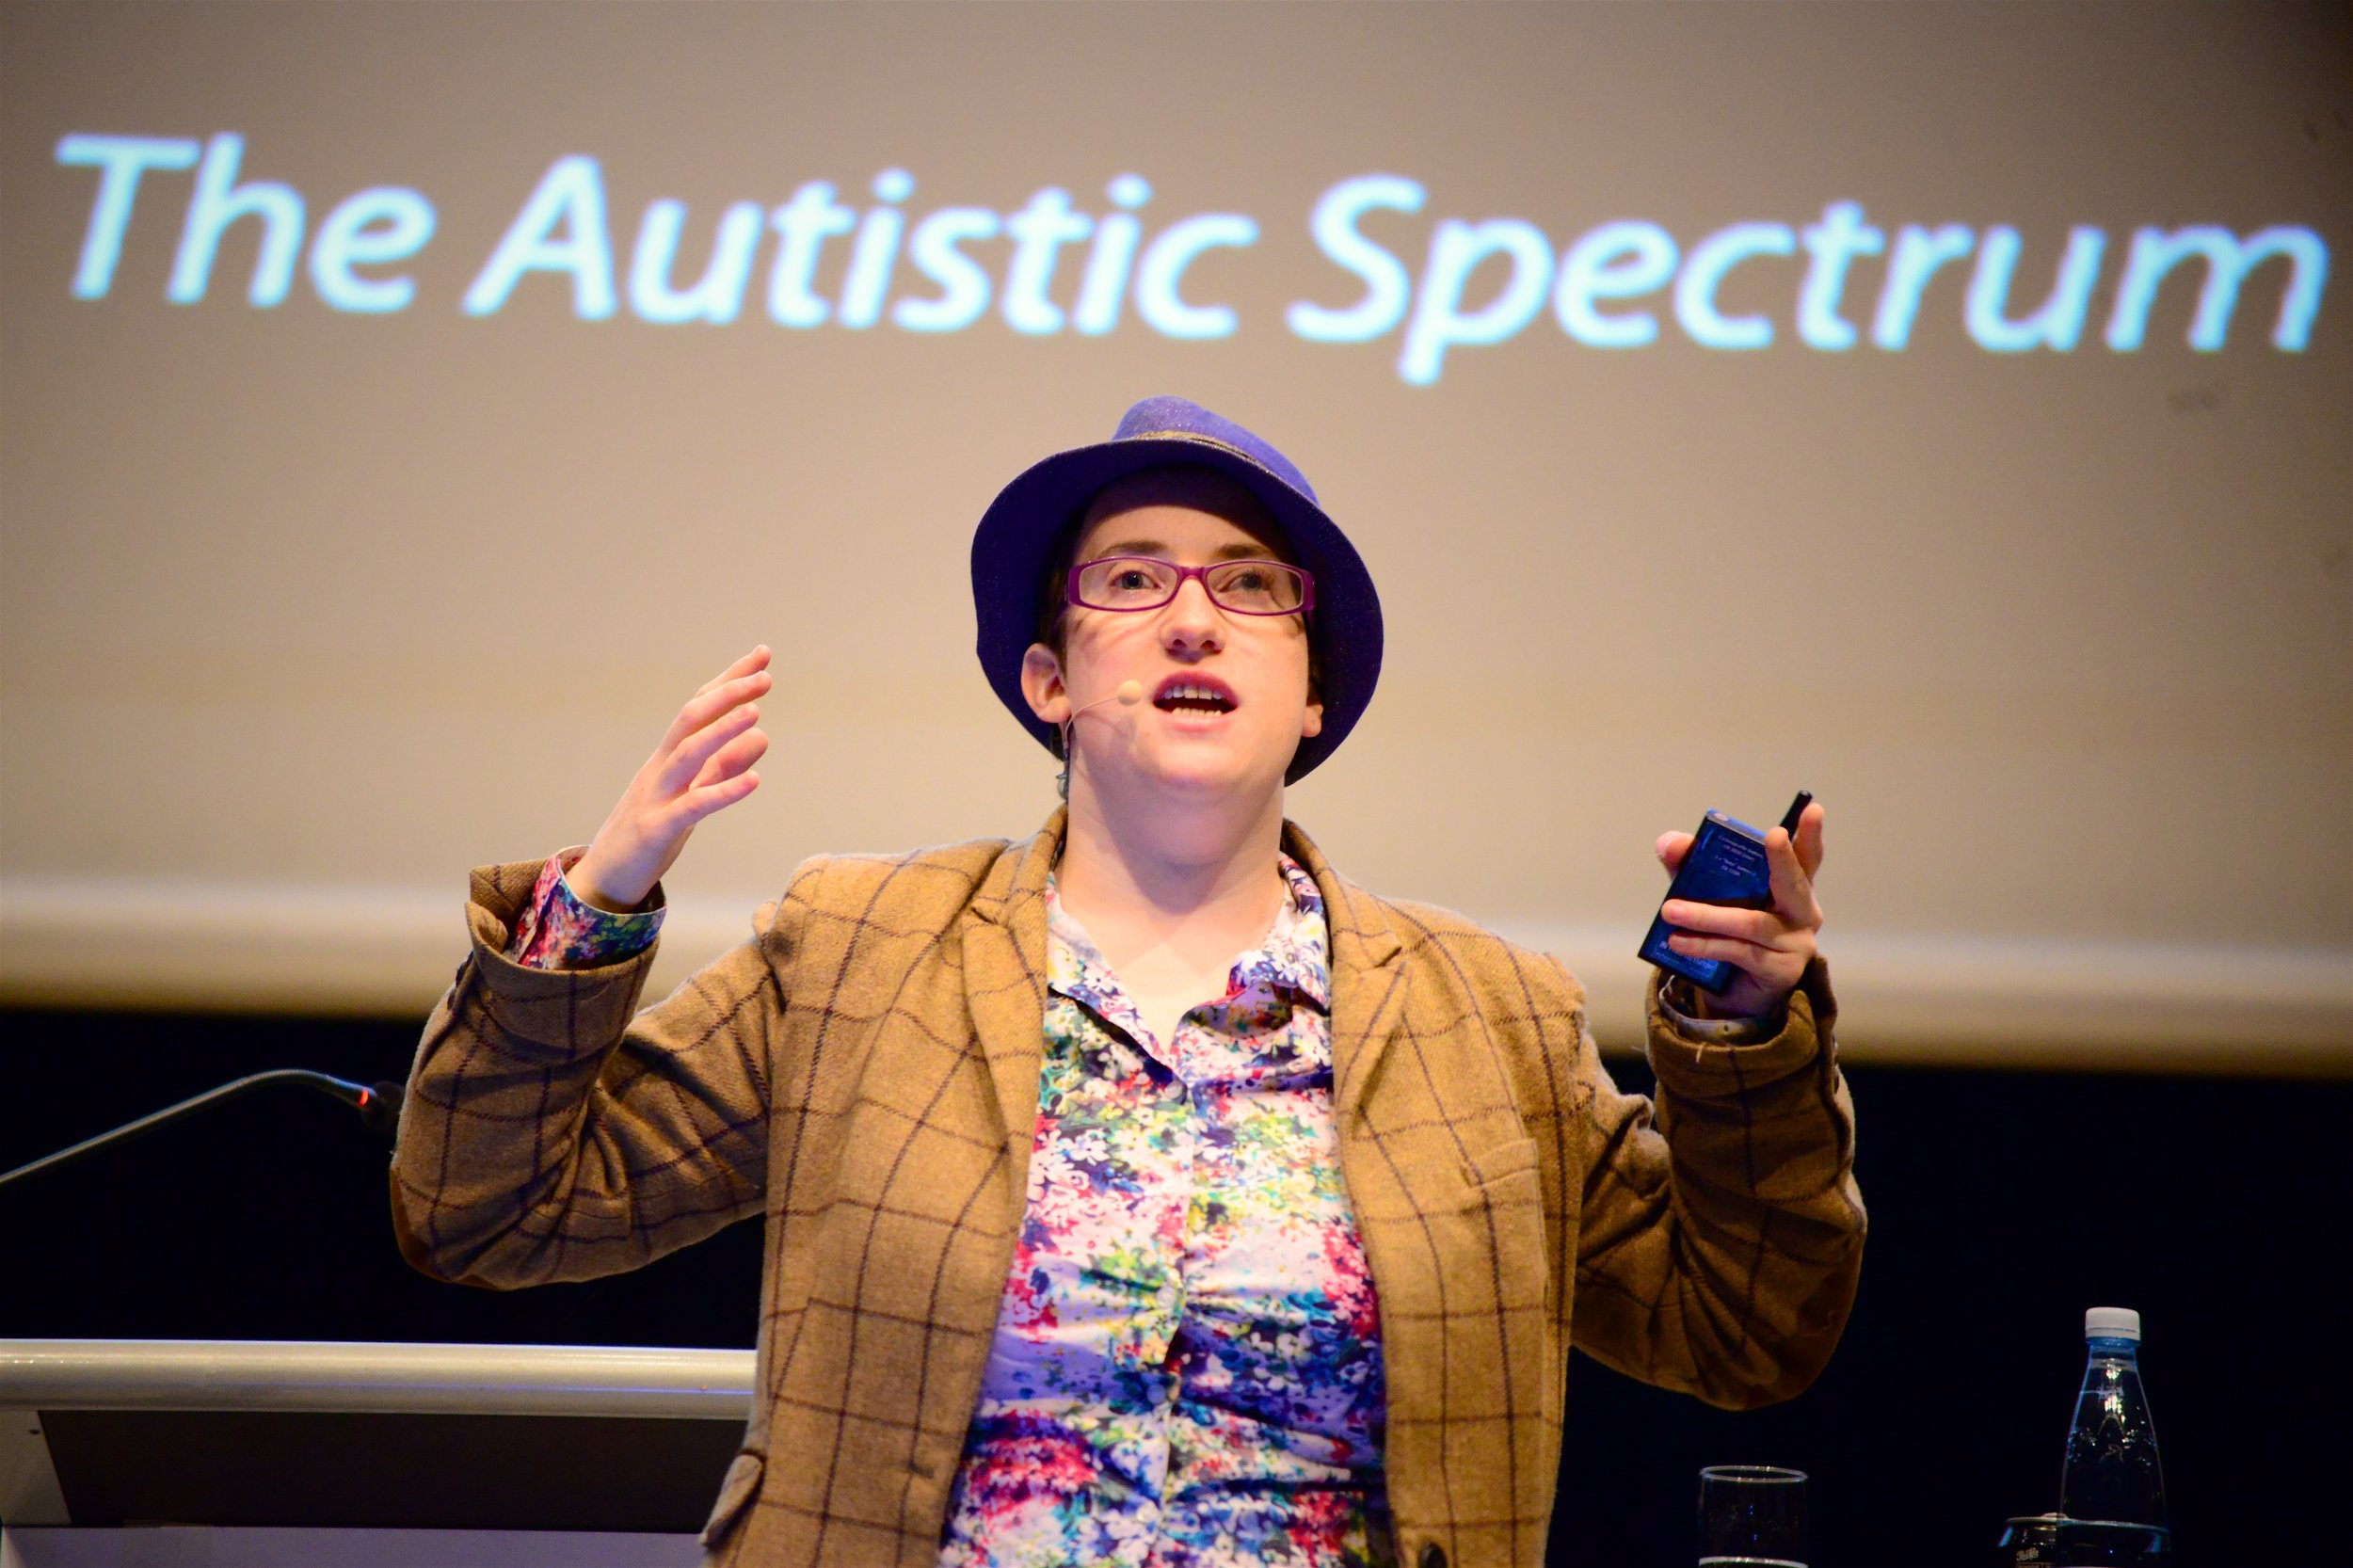 Robyn's life - It can be massively draining fighting for your child, and sometimes it does;'t feel like there is light at the end of the tine, but being a autistic adult does not have to be something you fear for your child, robyn are her heart warming and inspirational story , Robyn is just a regular person who works hard.